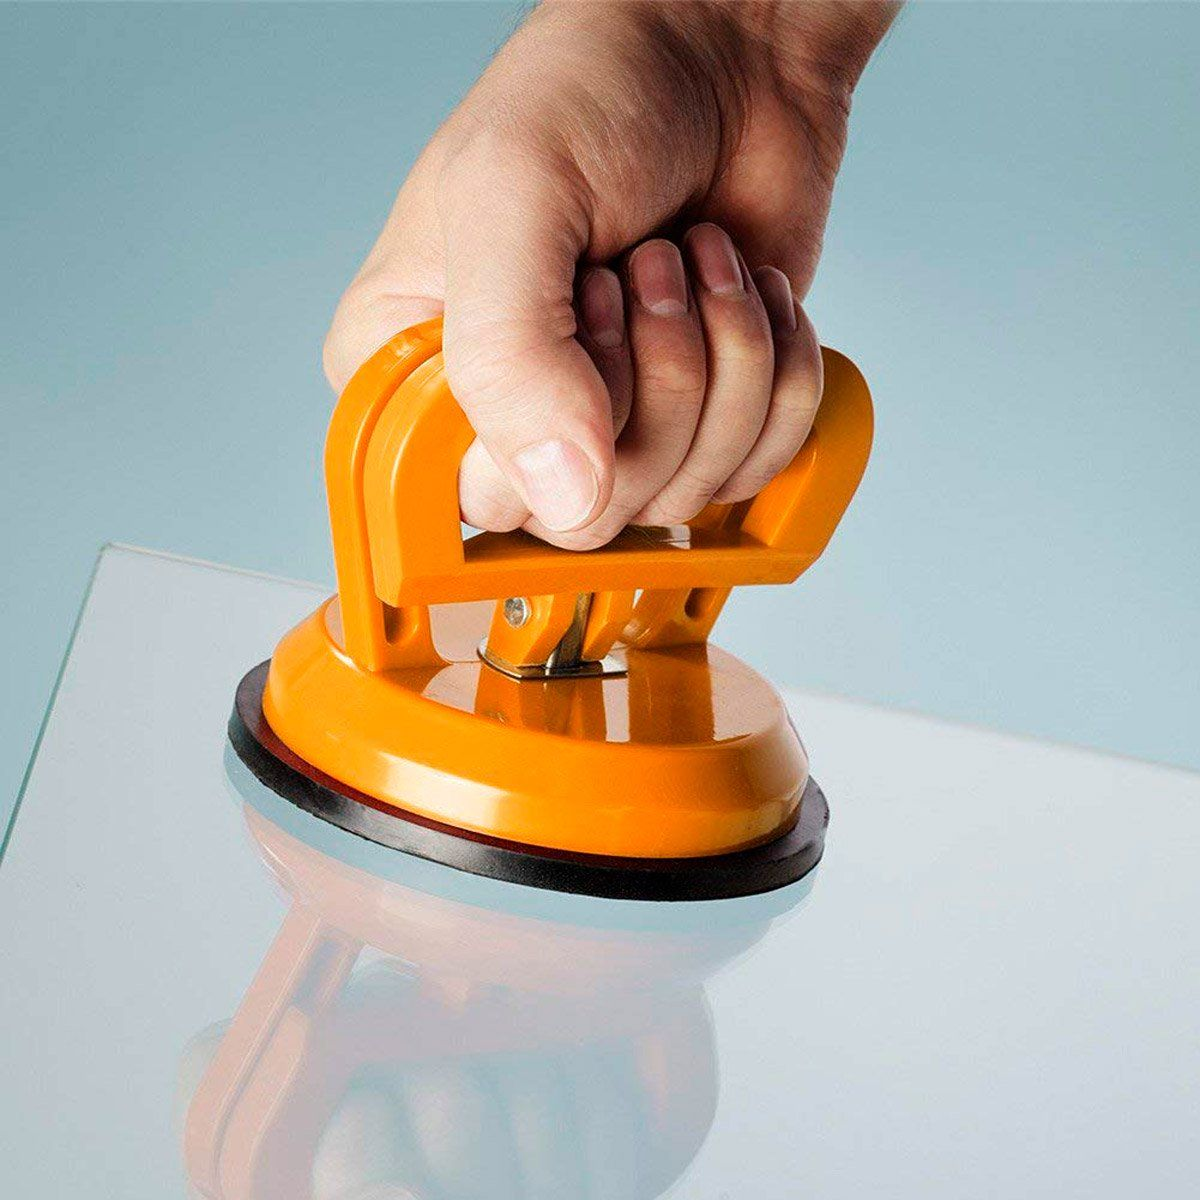 5 Favorite Tools For Tile Projects Glass Suction Cups Mirror Tiles Tile Projects [ 1200 x 1200 Pixel ]